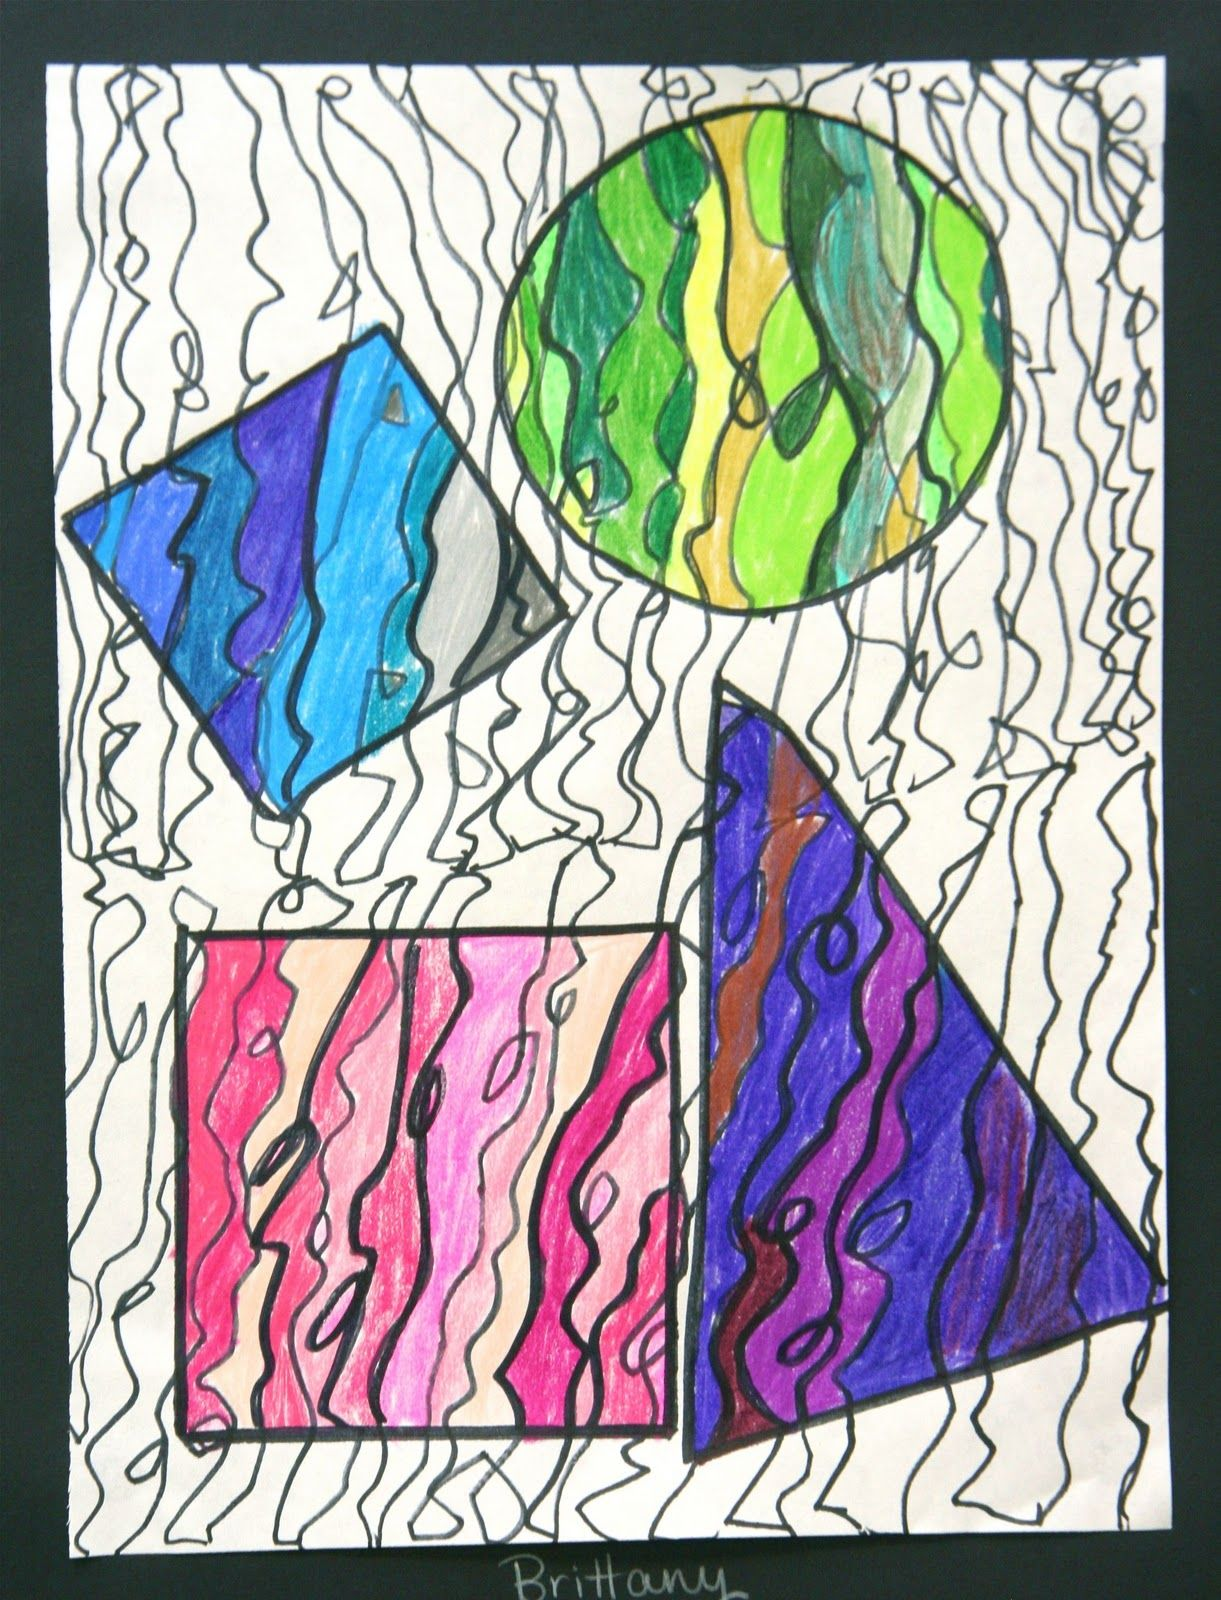 Students In Grades 4 6 Have Been Working On These Fun Colorful Drawings For The Past Two Weeks This Project Went Ri Classroom Art Projects Art Art Classroom